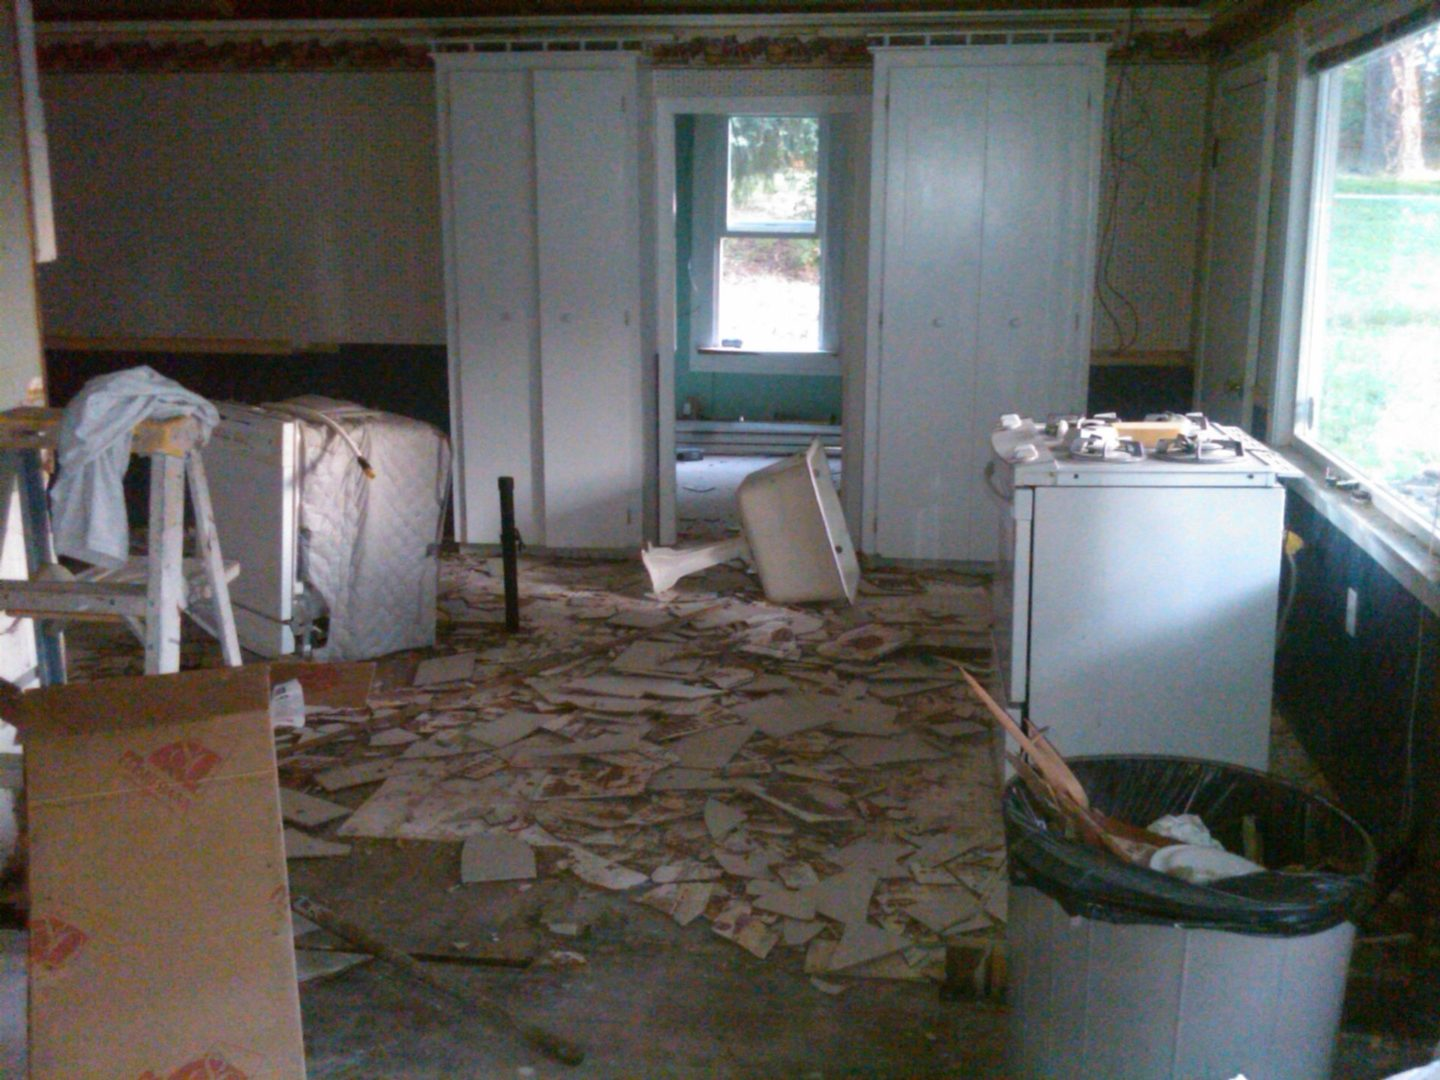 Farmhouse Kitchen Before by sheholdsdearly.com